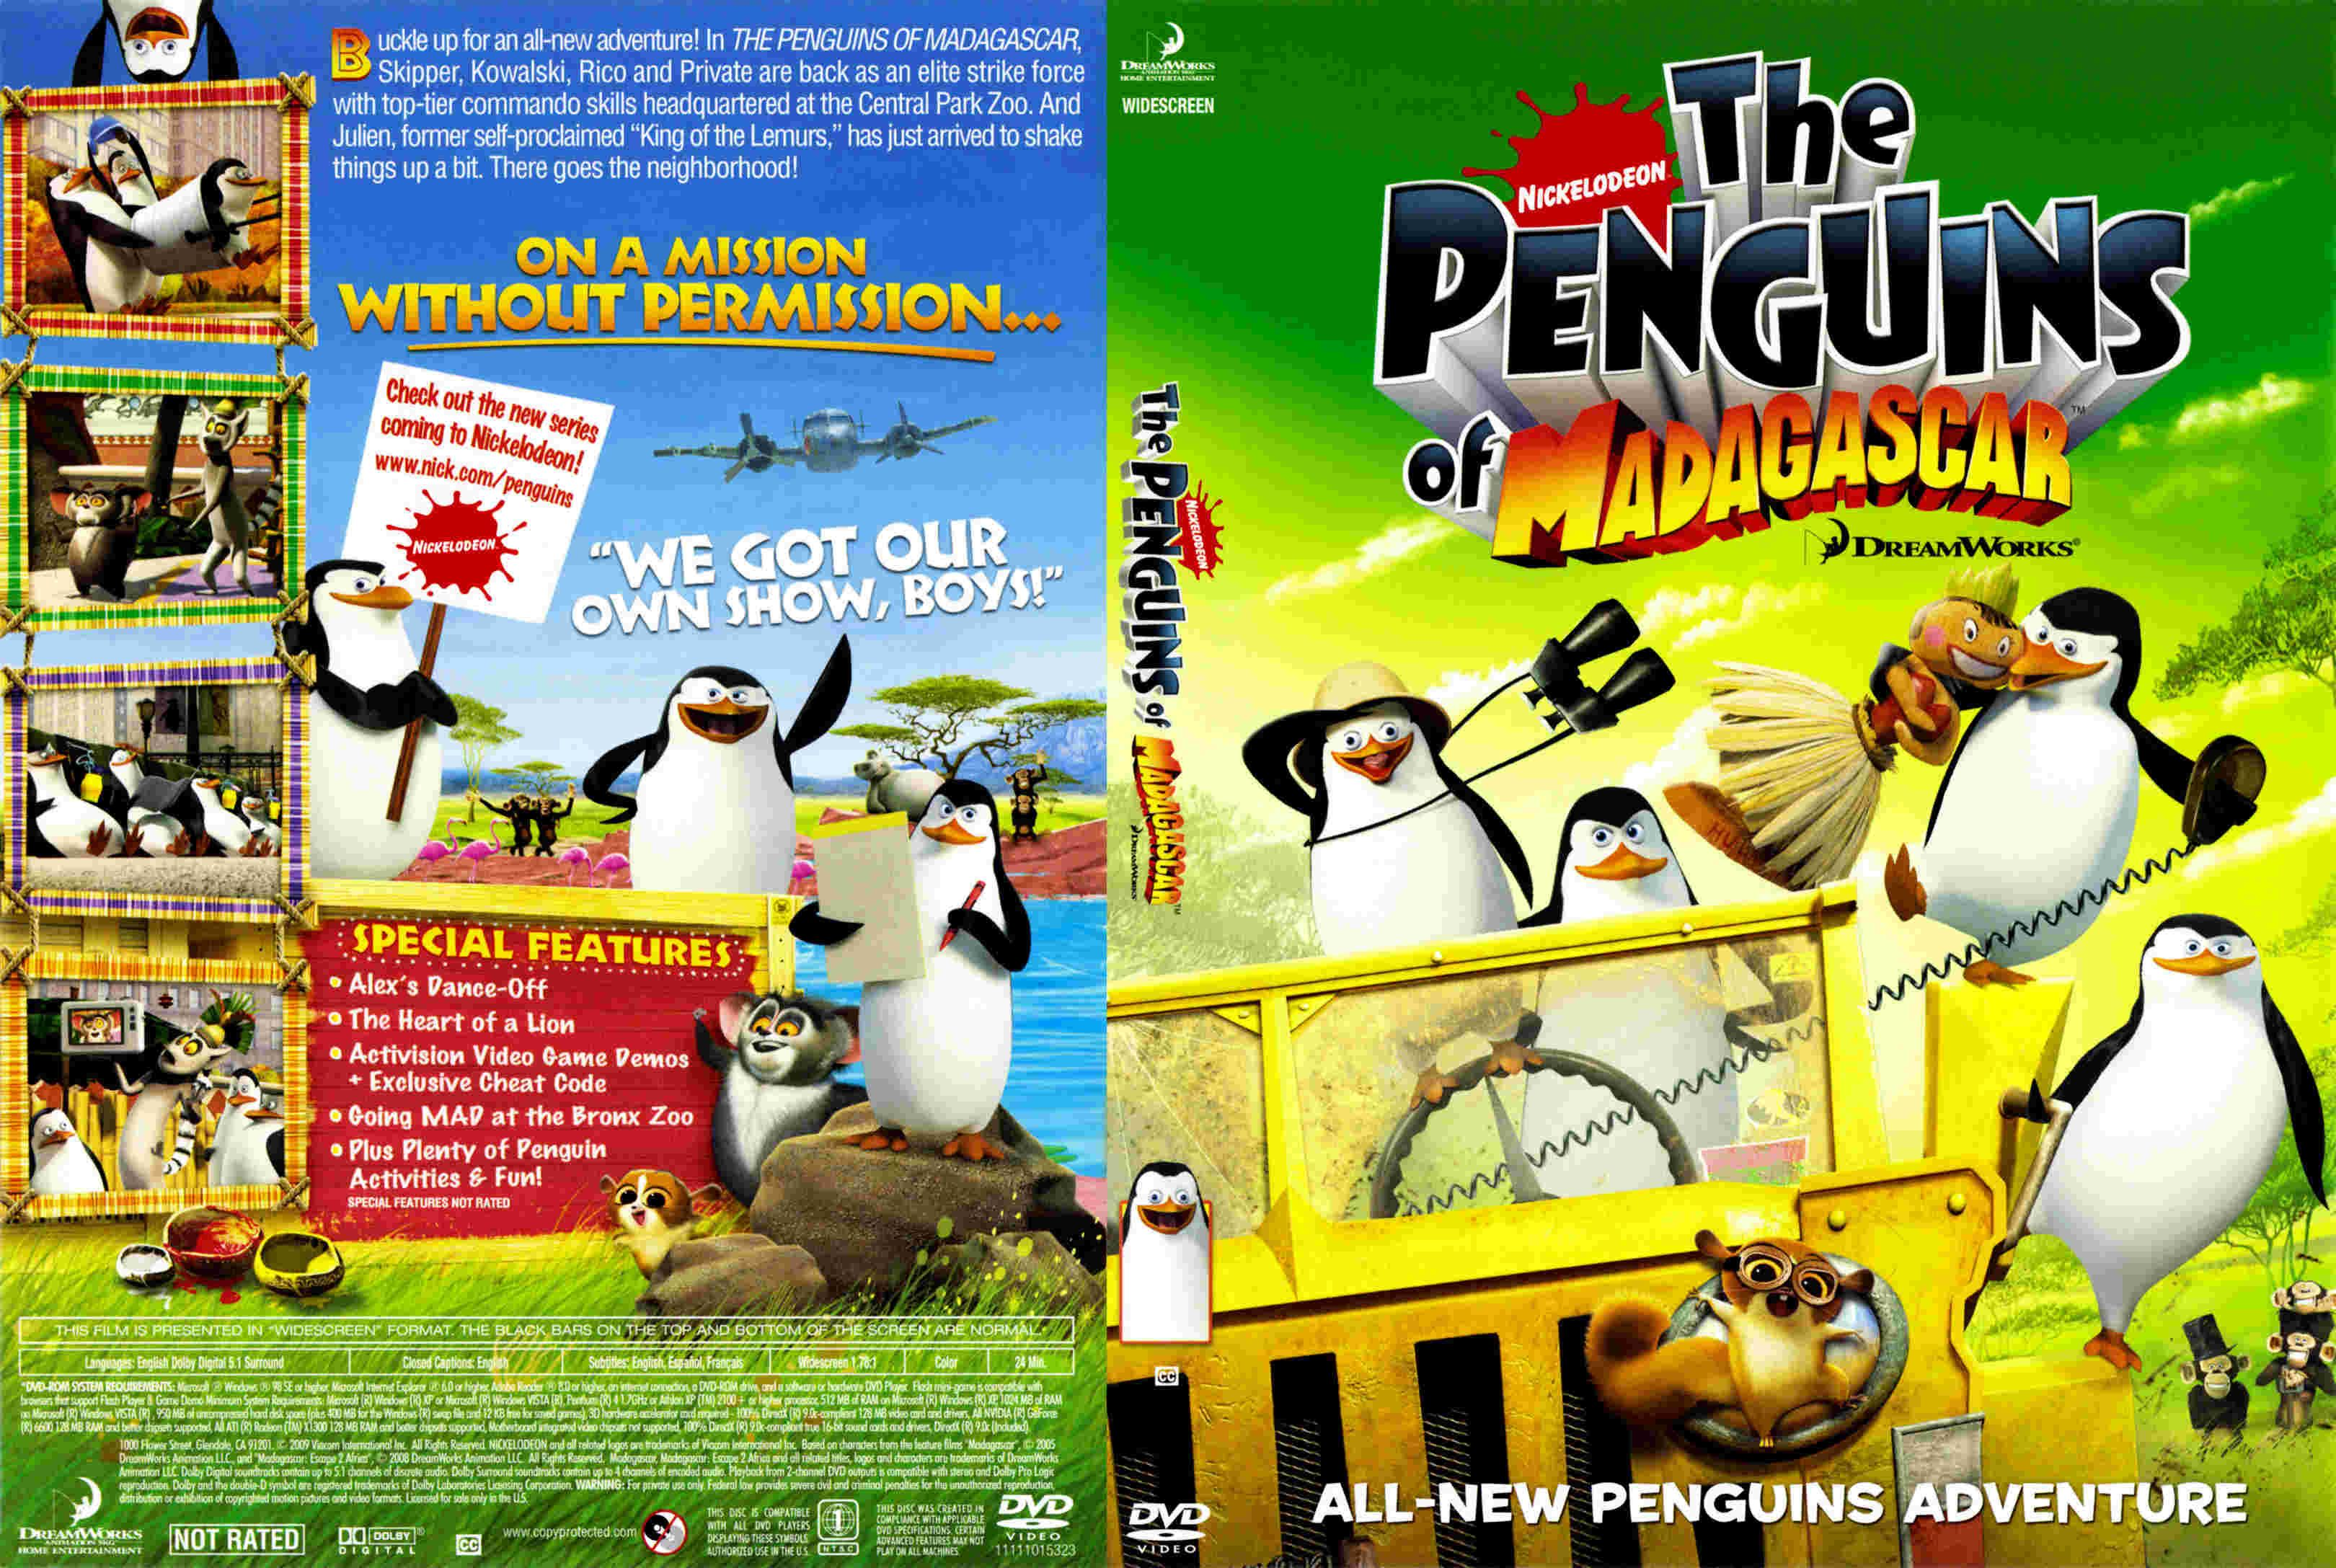 The Penguins Of Madagascar DVD US | DVD Covers | Cover